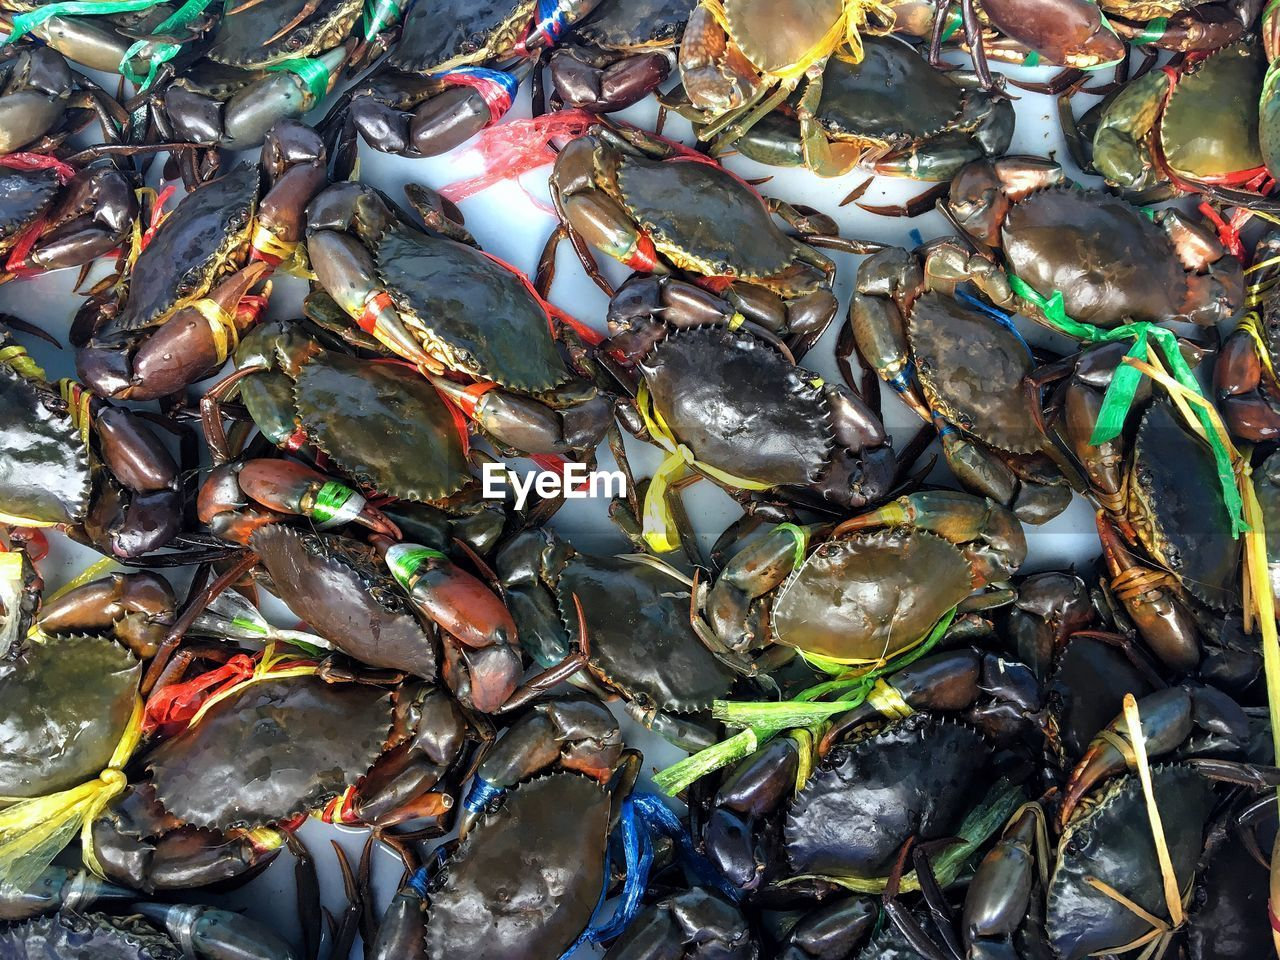 seafood, animal, full frame, food and drink, food, animal wildlife, freshness, animal themes, no people, vertebrate, fish, backgrounds, high angle view, animals in the wild, group of animals, close-up, raw food, crab, wellbeing, large group of animals, marine, fishing industry